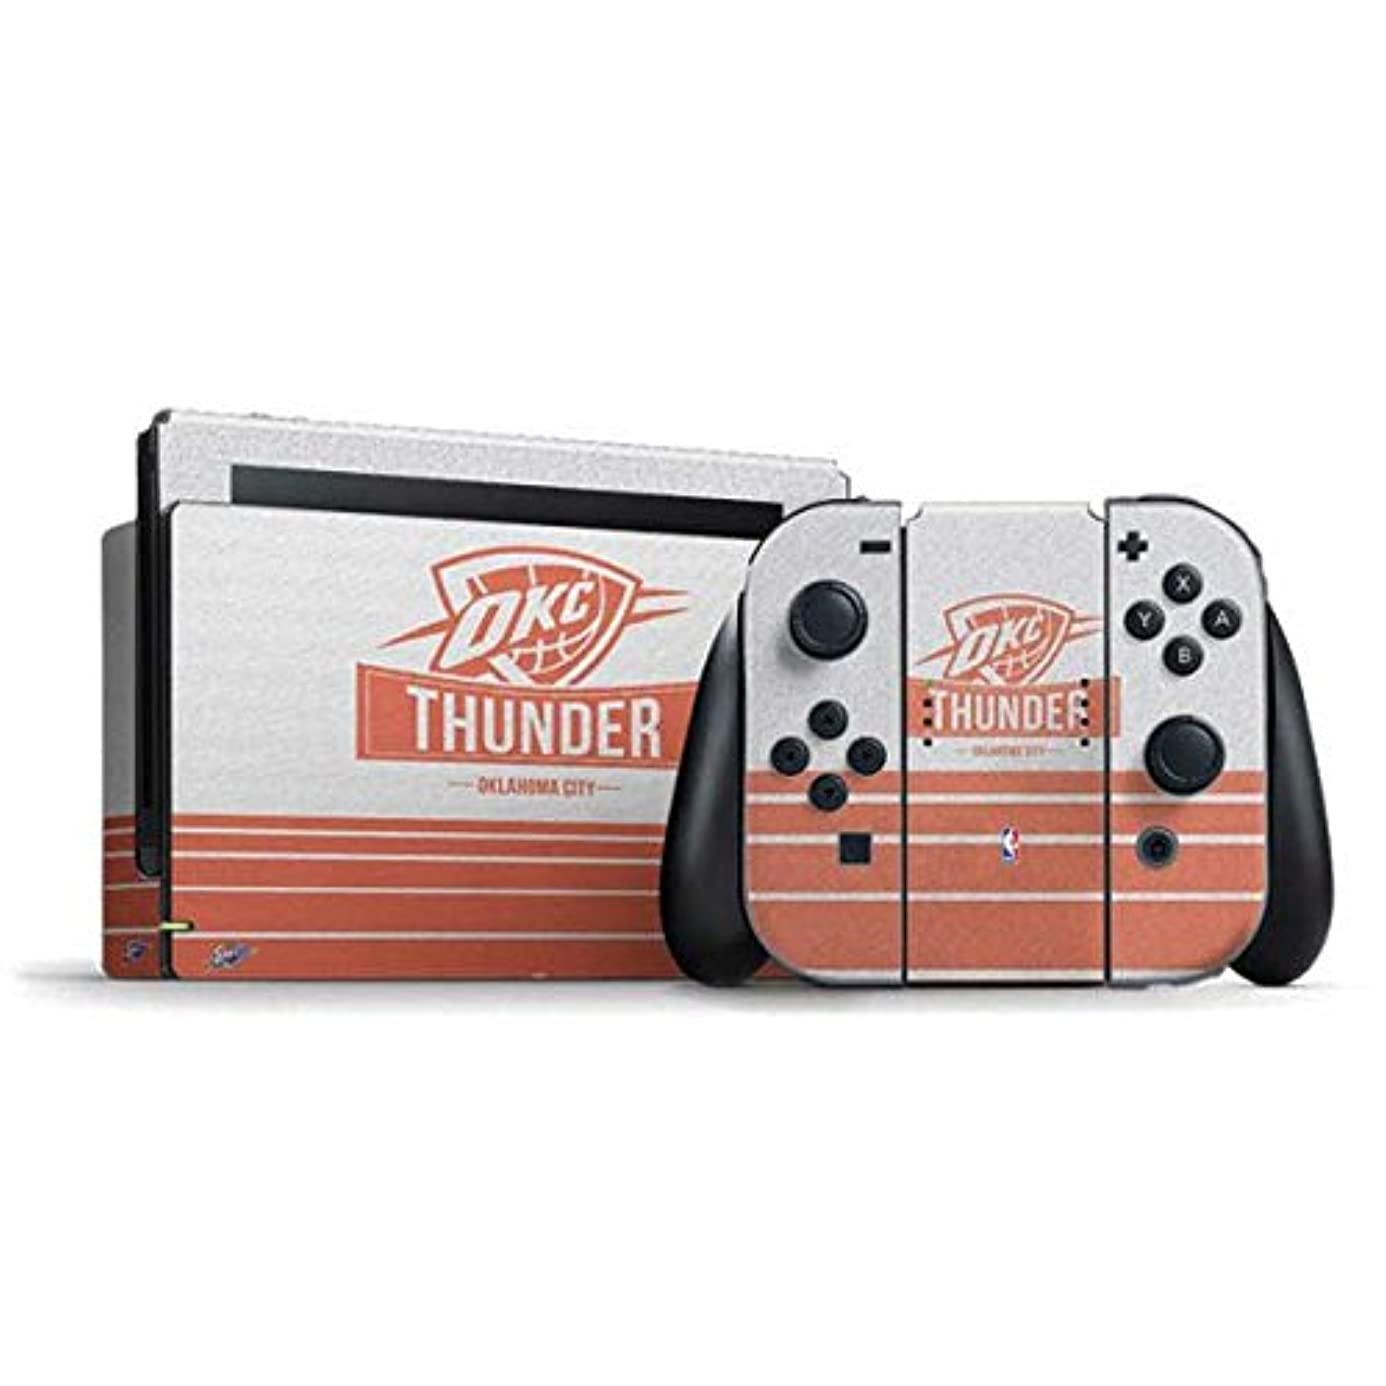 NBA Oklahoma City Thunder Nintendo Switch Bundle Skin - Oklahoma City Thunder Static Vinyl Decal Skin For Your Switch Bundle